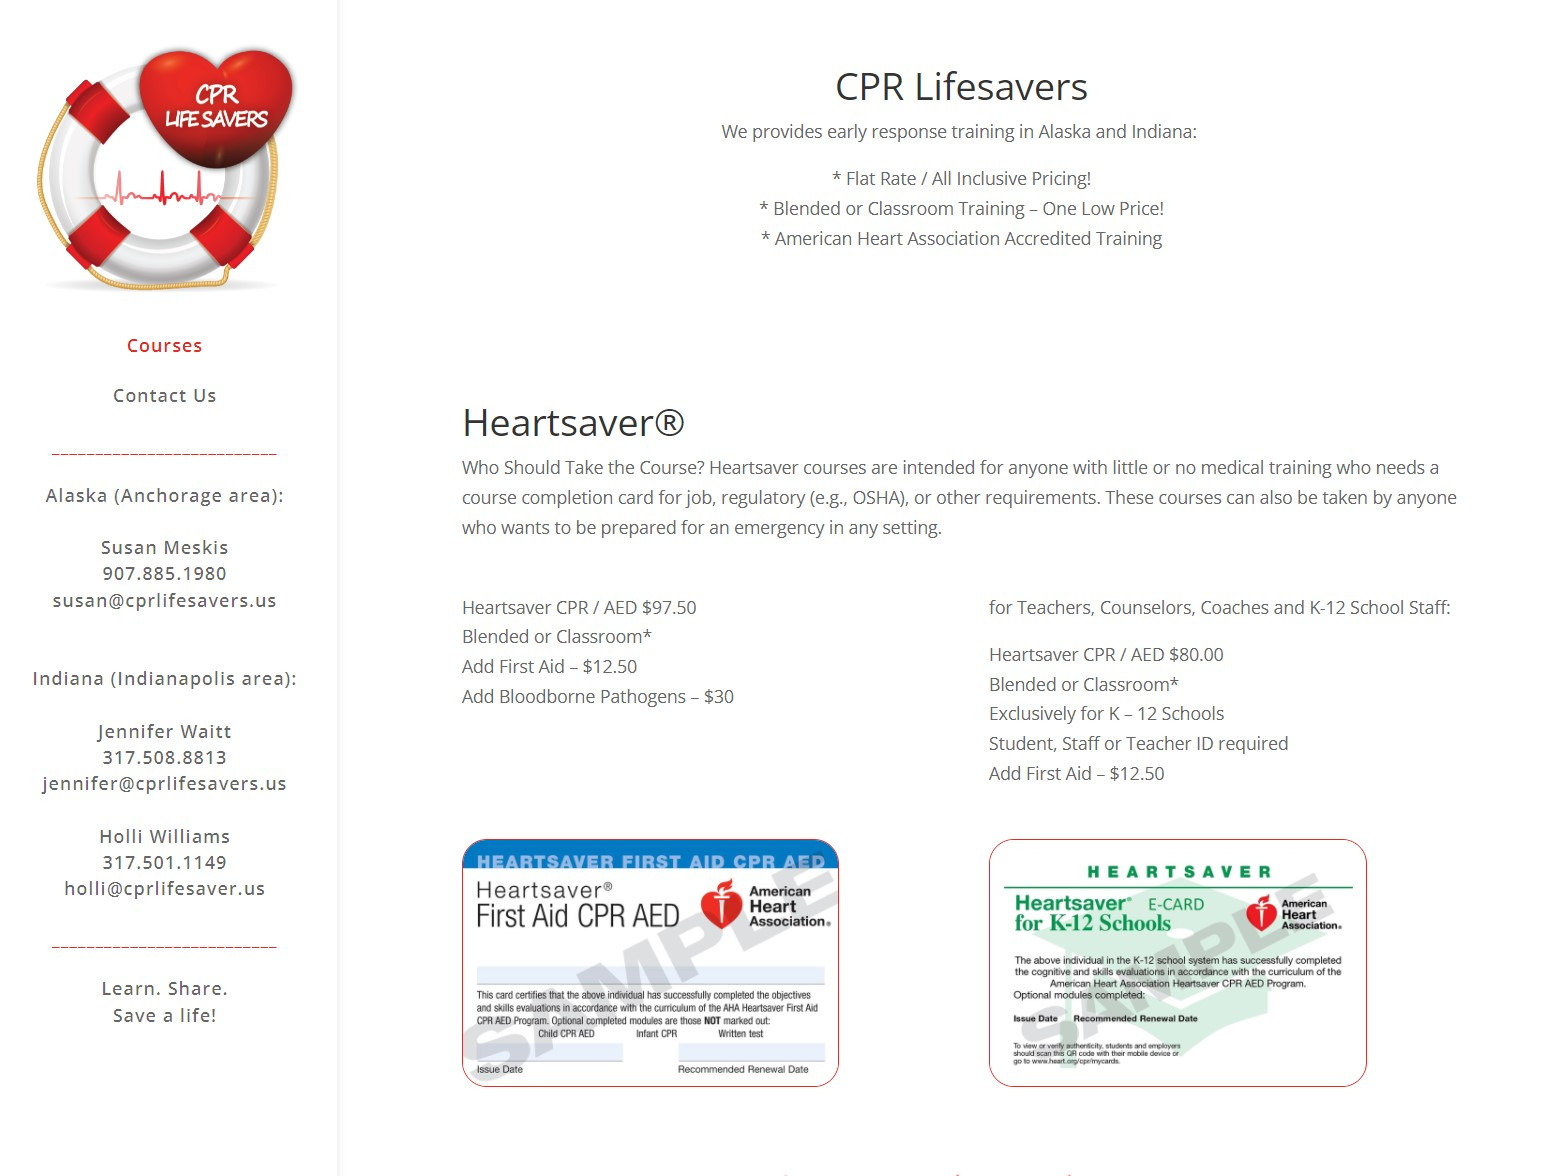 cpr life savers